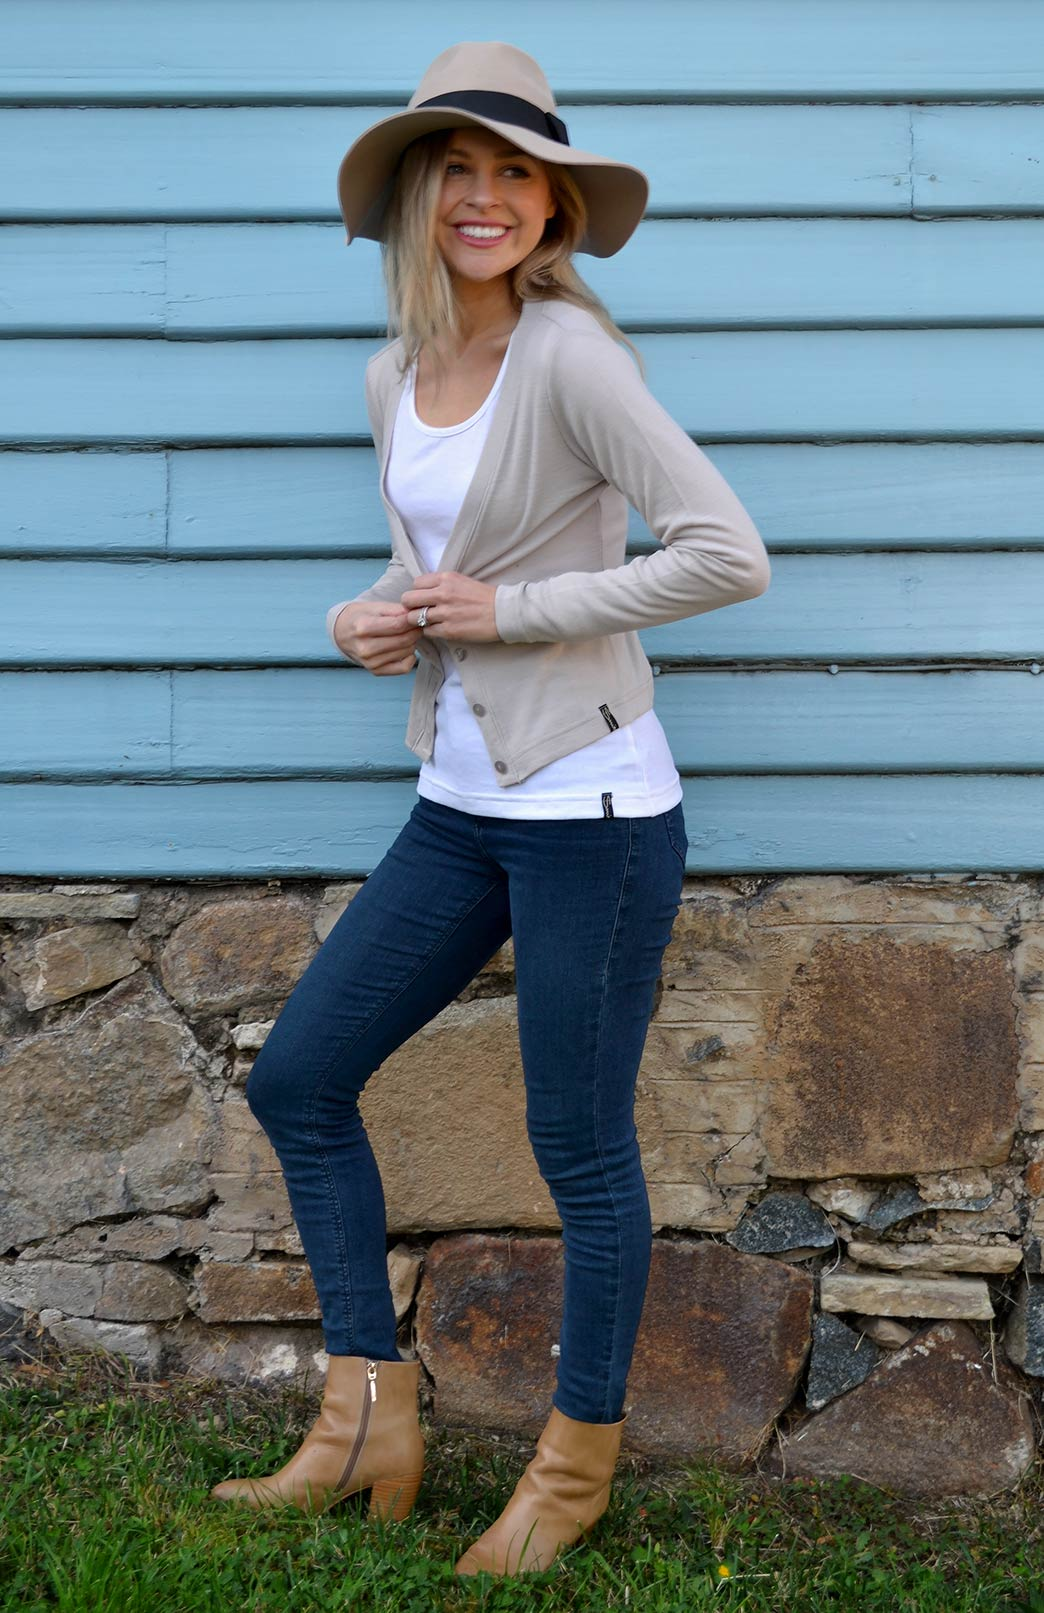 Crop Cardigan - Long Sleeved - Women's Stone Long Sleeve Merino Wool Cropped Cardigan with Buttons - Smitten Merino Tasmania Australia